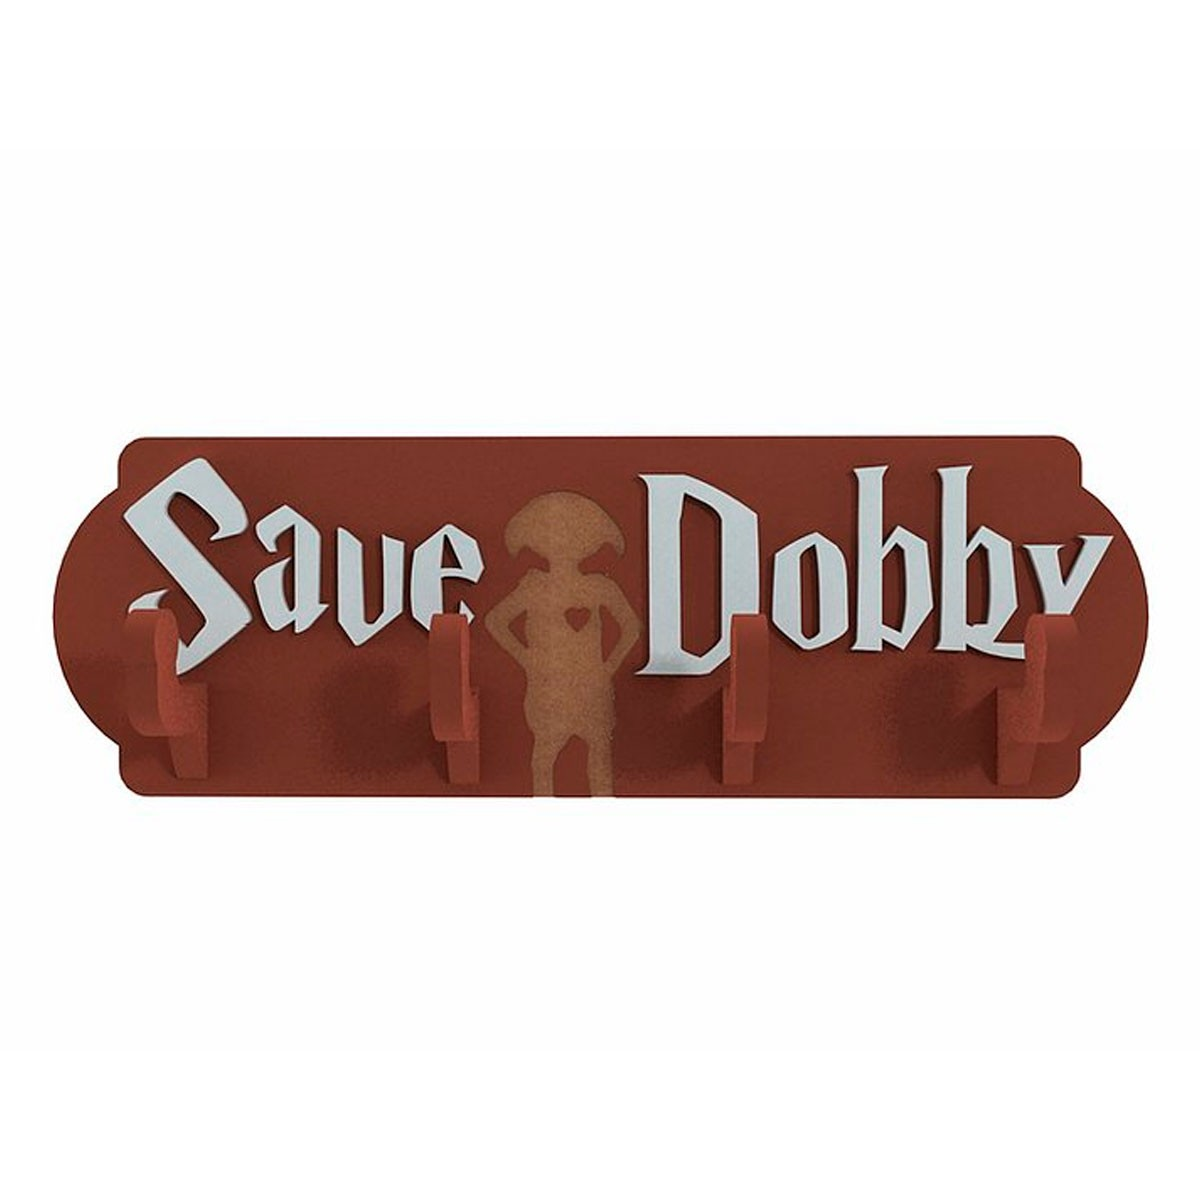 Cabideiro Porta Chaves de Madeira Harry Potter Save Dobby